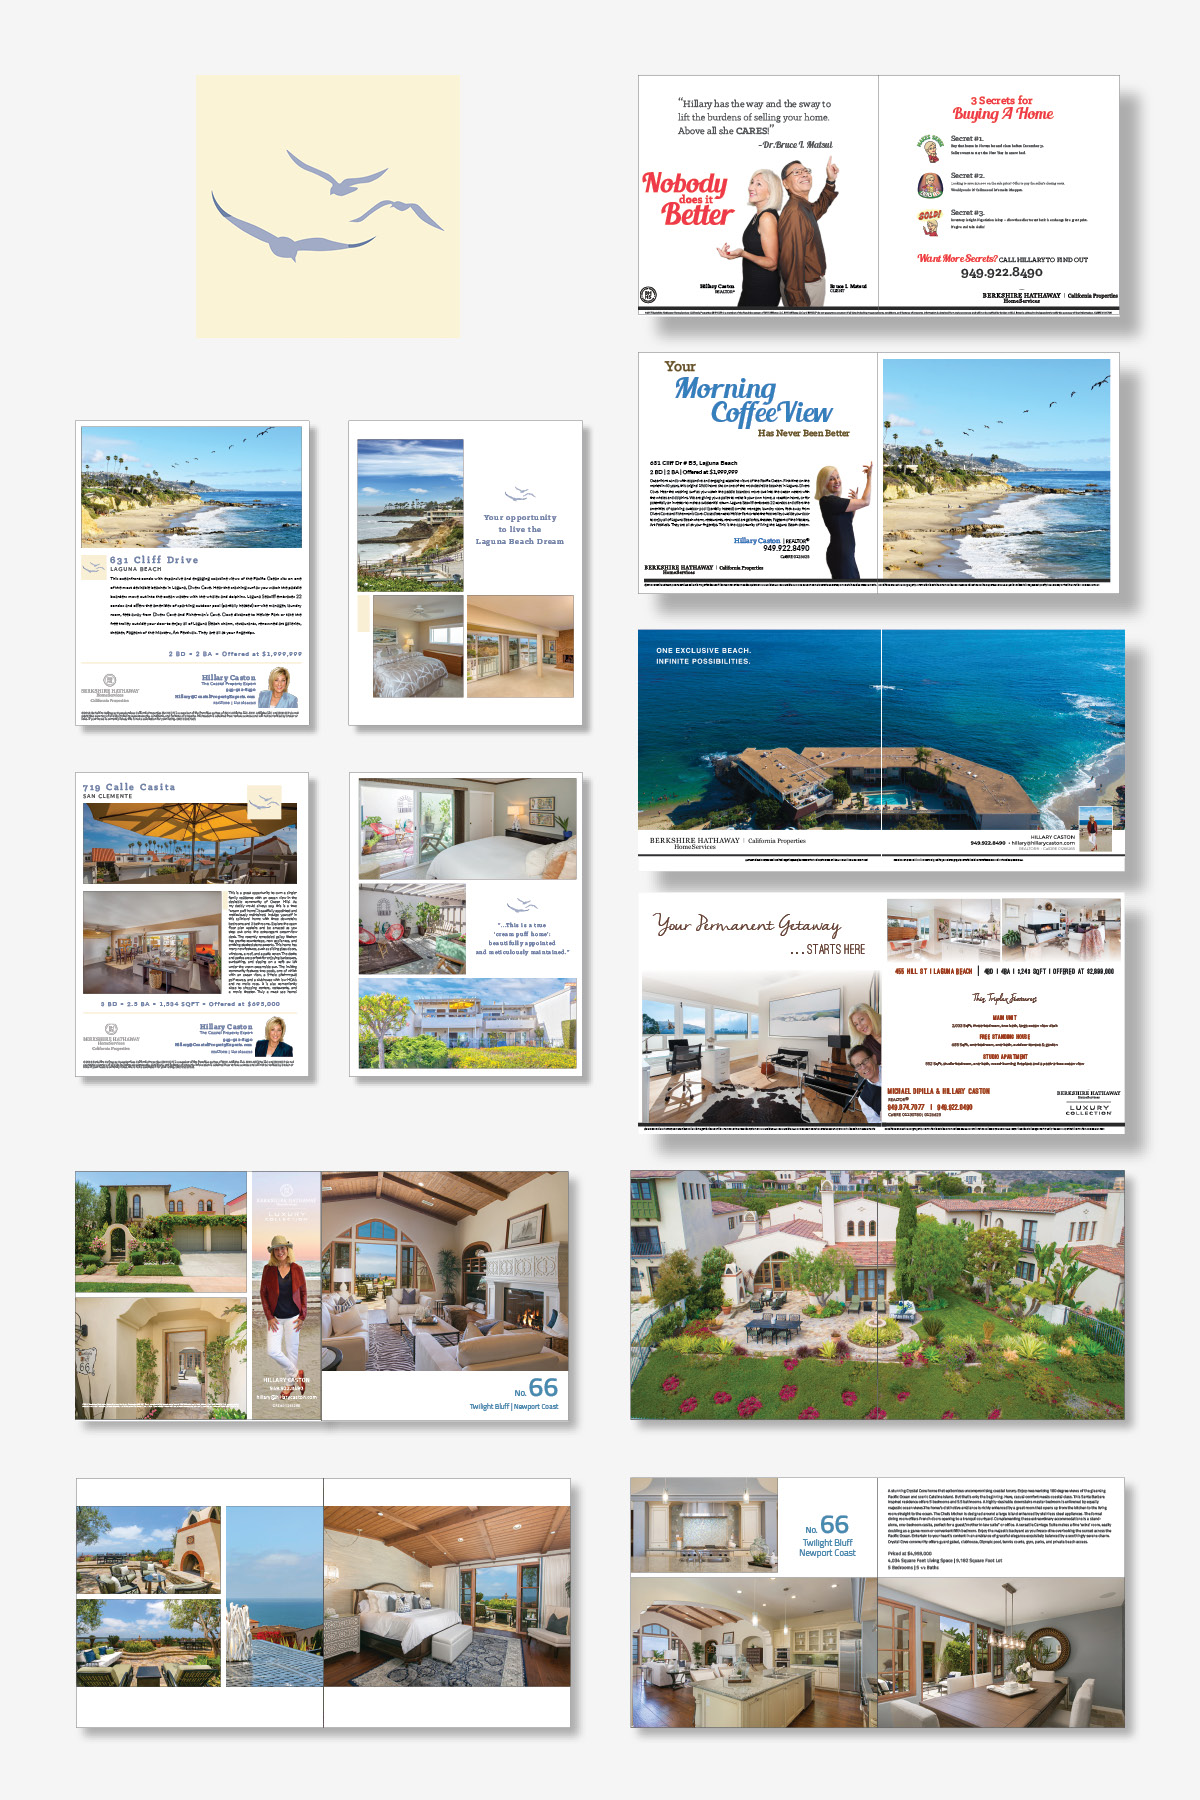 THE COASTAL PROPERTY EXPERT   This brand was developed for Hillary Caston, a REALTOR® in Laguna Beach, California. On top of the collateral design, Brand Hatch has developed video, social media marketing plans, and email campaigns.